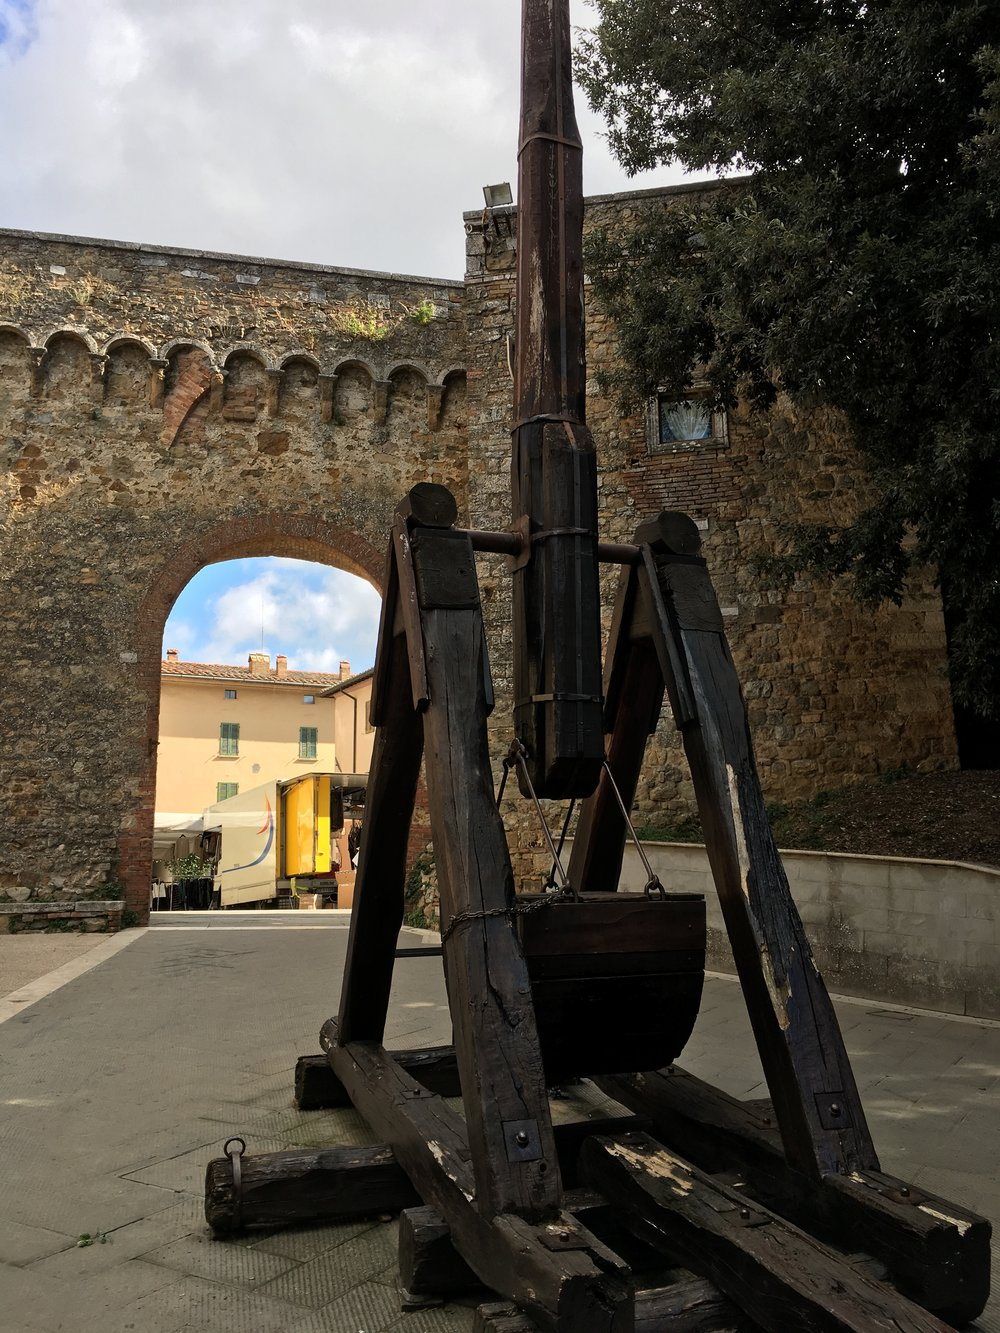 San Quirico d'Orcia - a short distance away- another Middle Ages town